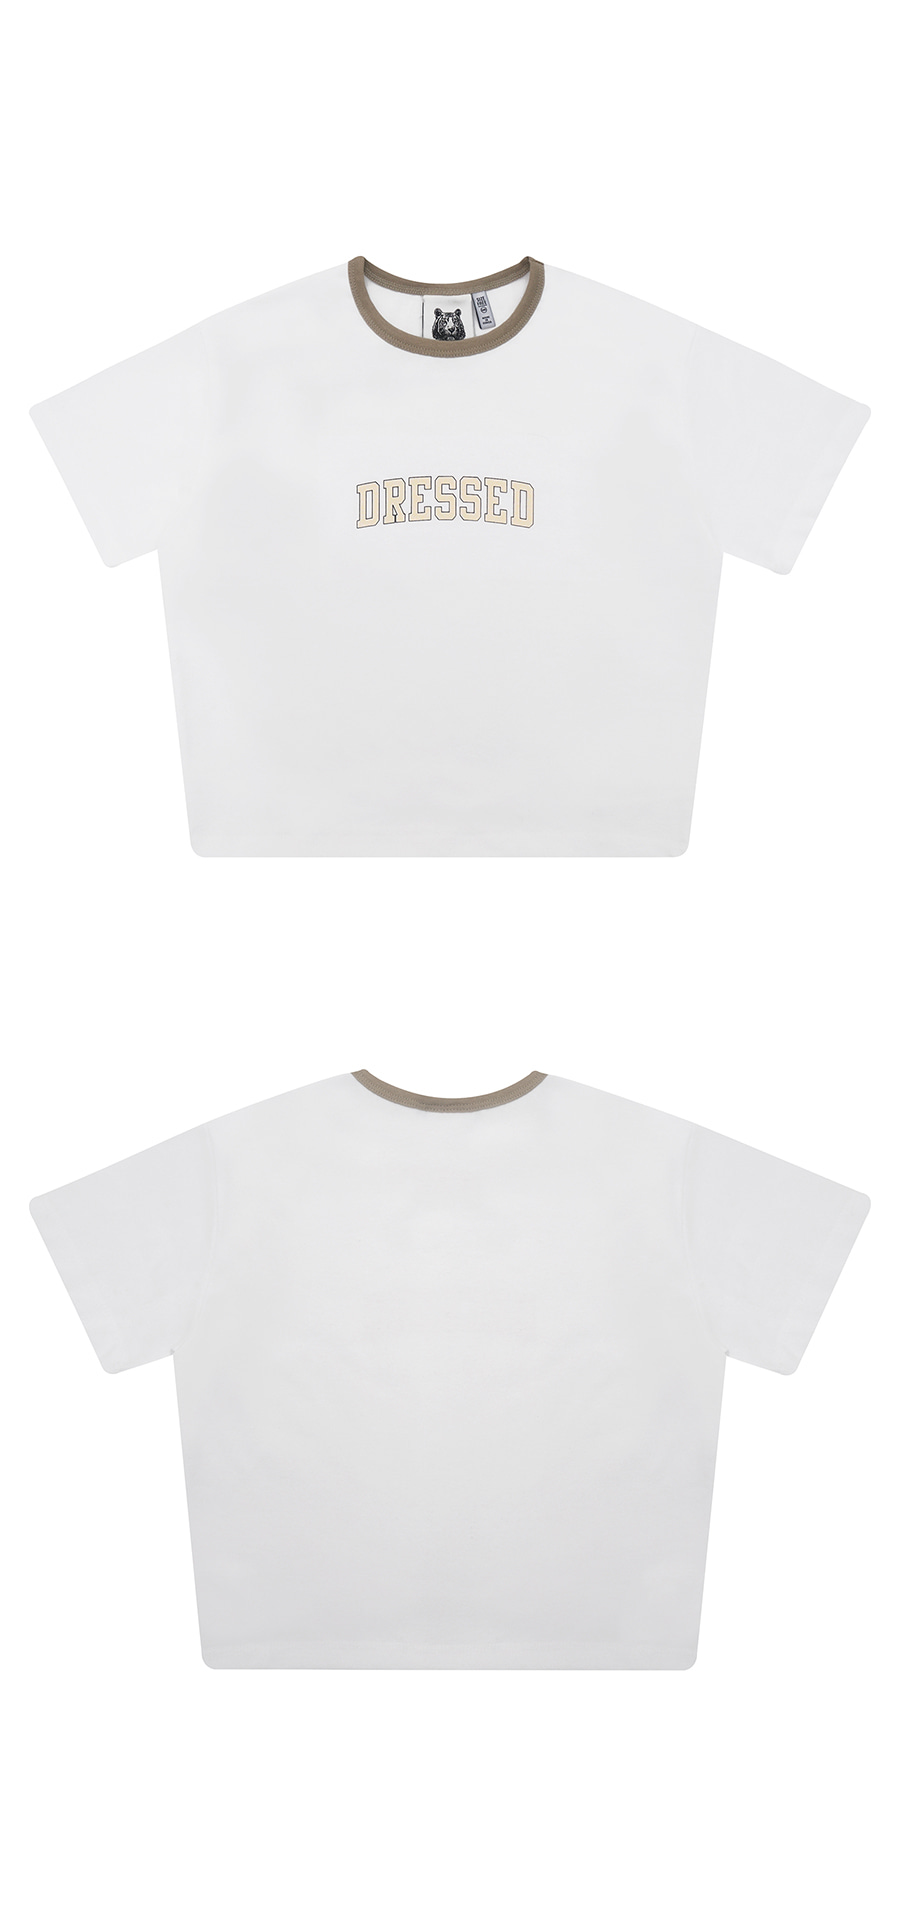 매치글로브(MATCHGLOBE) MG9S DRESSED CROP TEE (BEIGE)